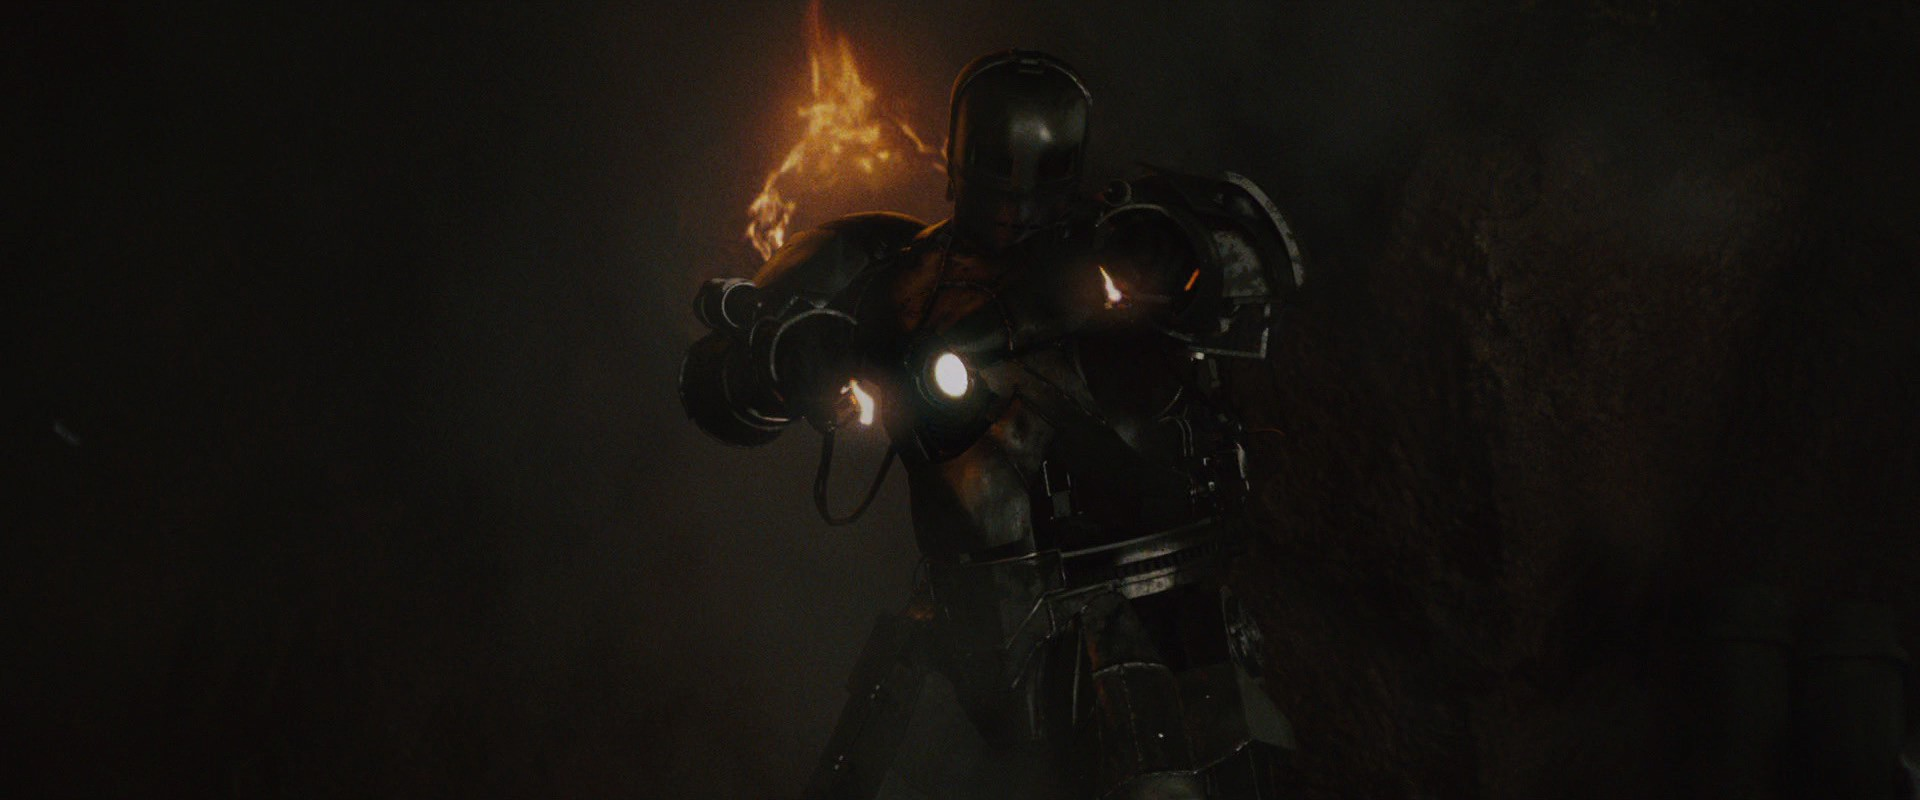 https://i2.wp.com/caps.pictures/200/8-iron-man1/full/iron-man1-movie-screencaps.com-4429.jpg